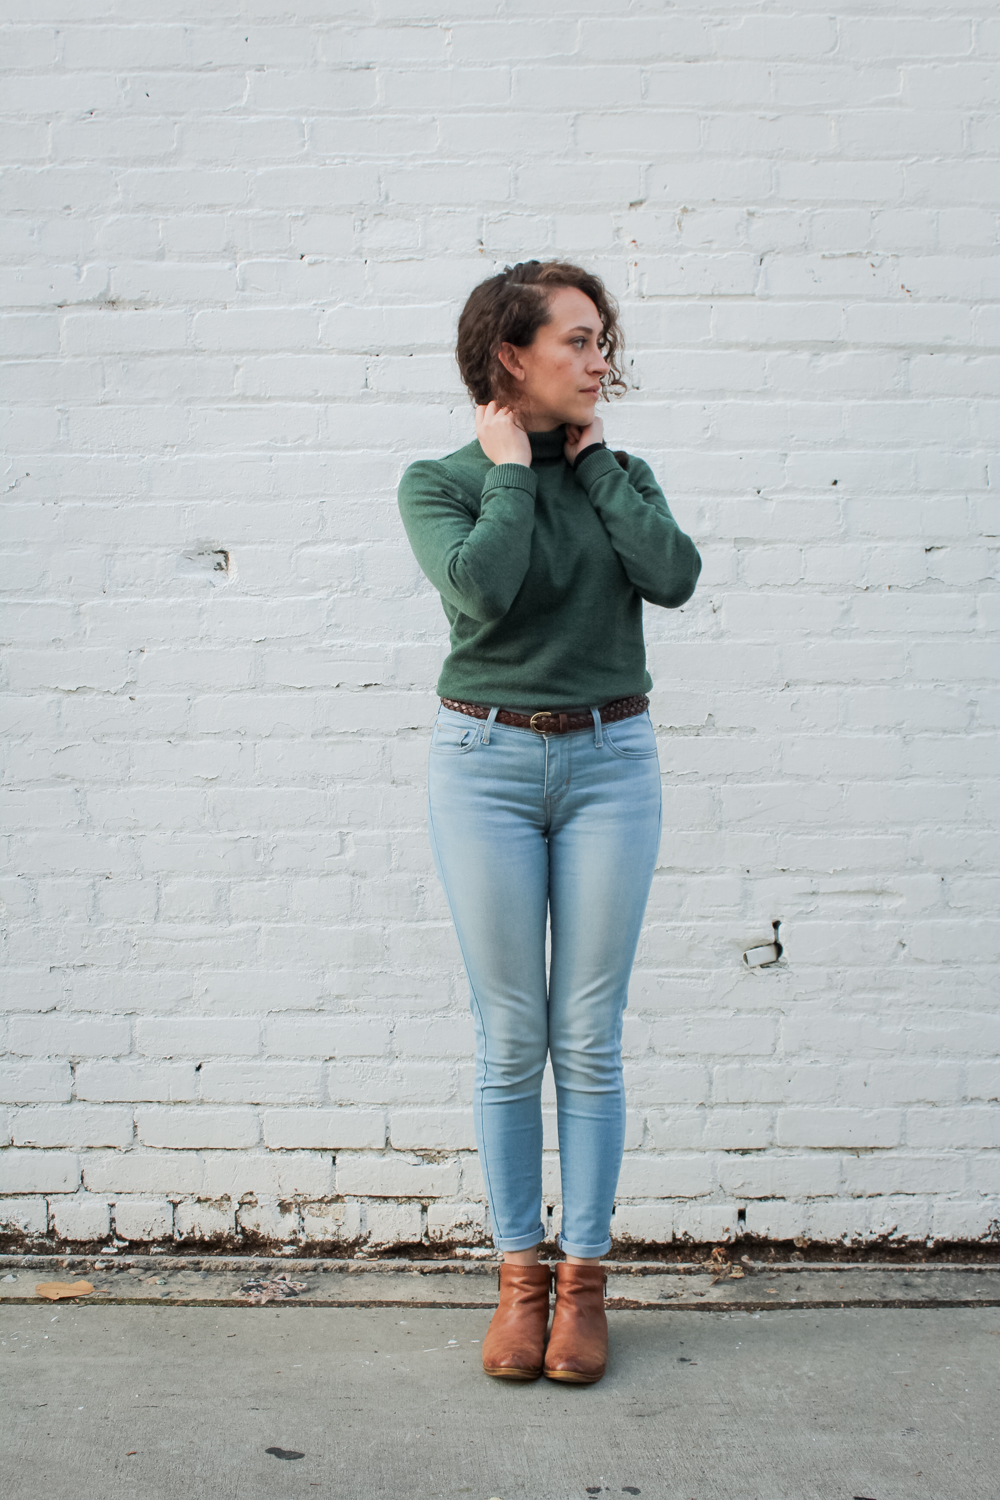 Spring 10x10/Unfancy Remix capsule wardrobe outfit. Light wash levis skinny jeans with ankle boots and a fitted turtleneck sweater | tinted green